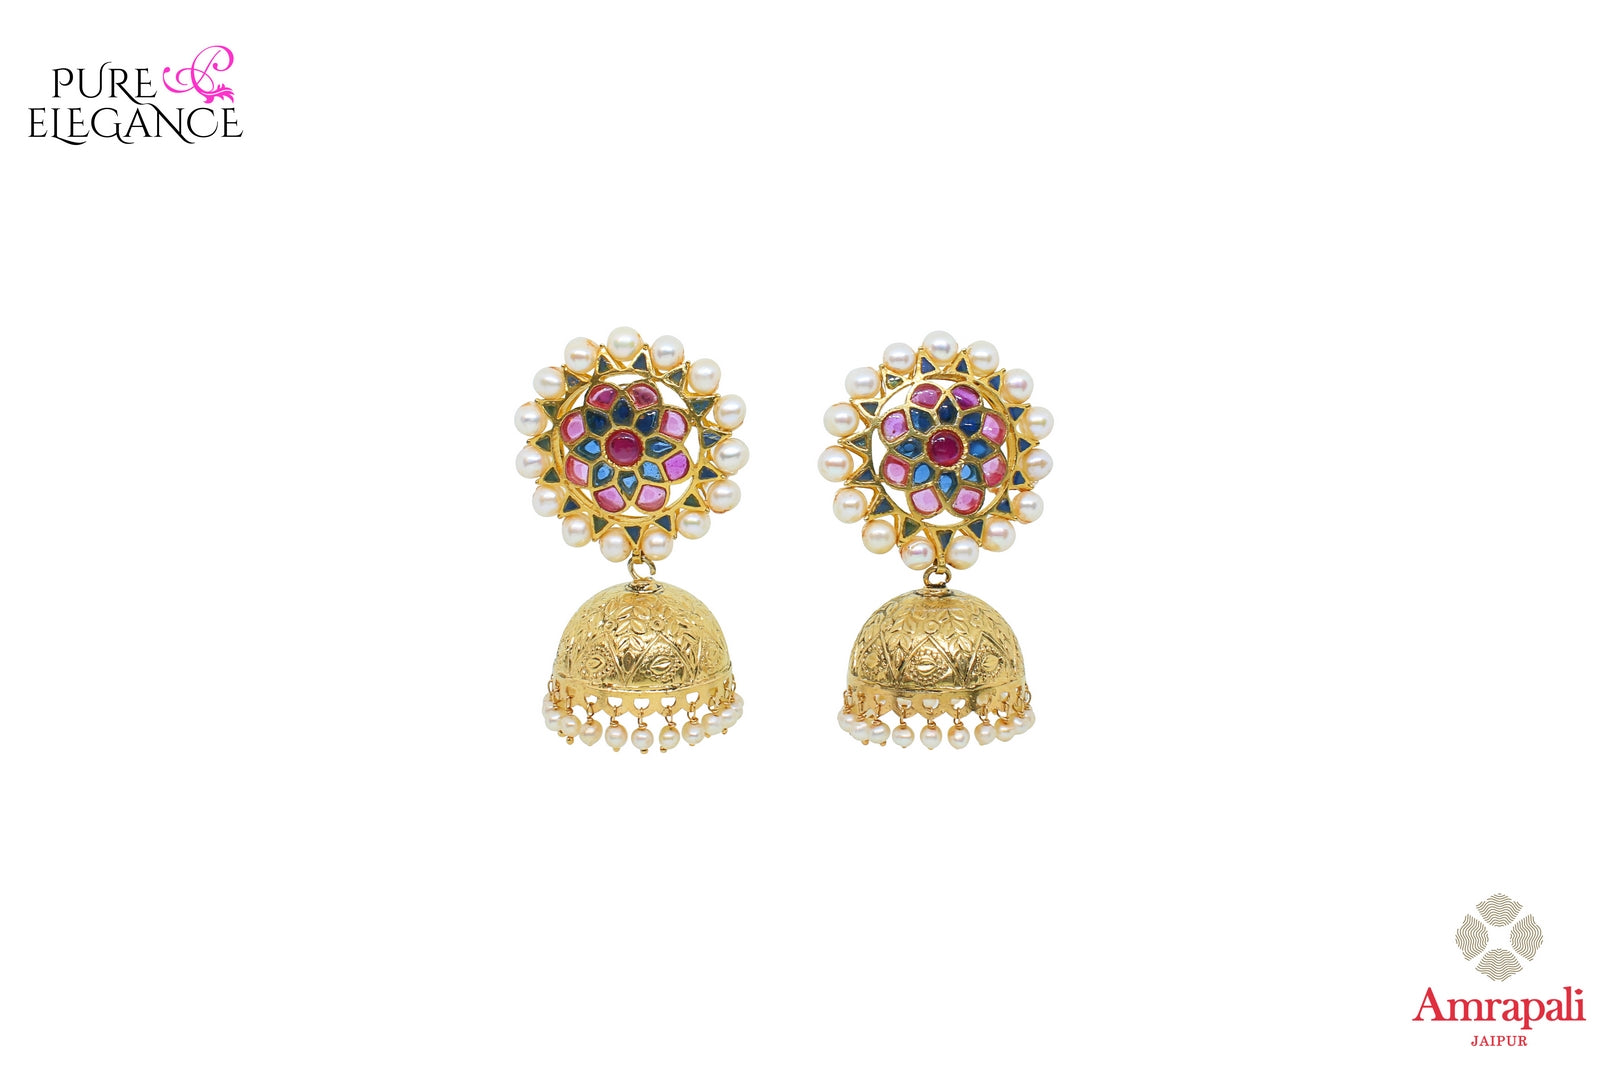 Buy silver gold plated glass jhumki earrings online in USA from Amrapali. Stand out amongst all with these exquisite earrings at weddings and special occasions. Shop more such gorgeous Indian silver gold plated jewellery in USA at Pure Elegance, you can visit our exclusive fashion store in USA or shop online.-front look